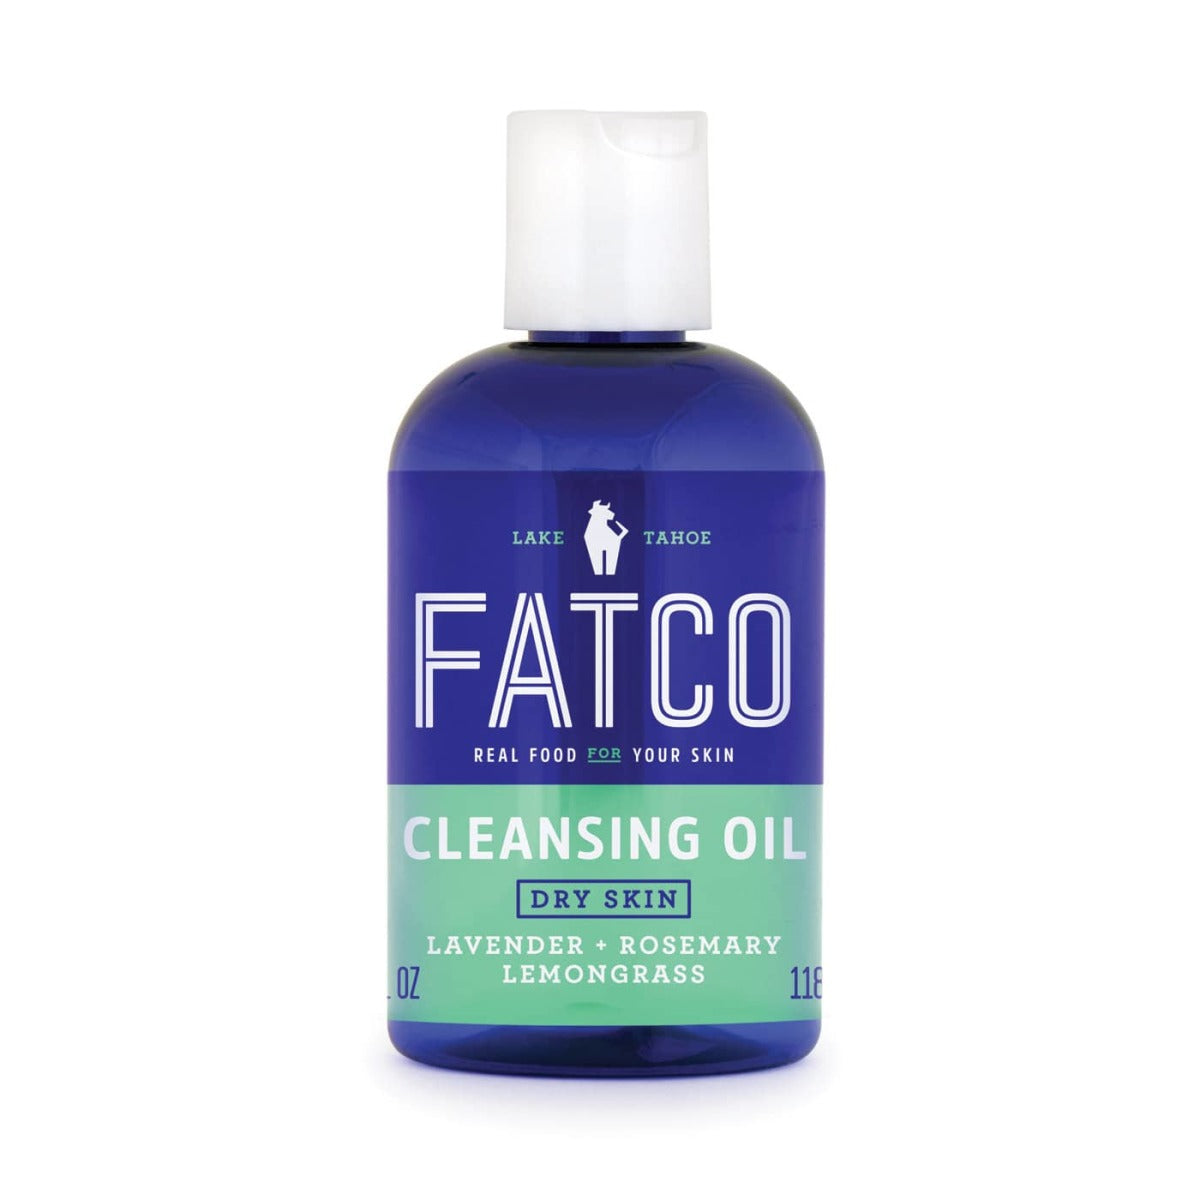 CLEANSING OIL FOR DRY SKIN 4 OZ-FATCO Skincare Products paleo skincare vegan friendly OCM cleanser dry combination